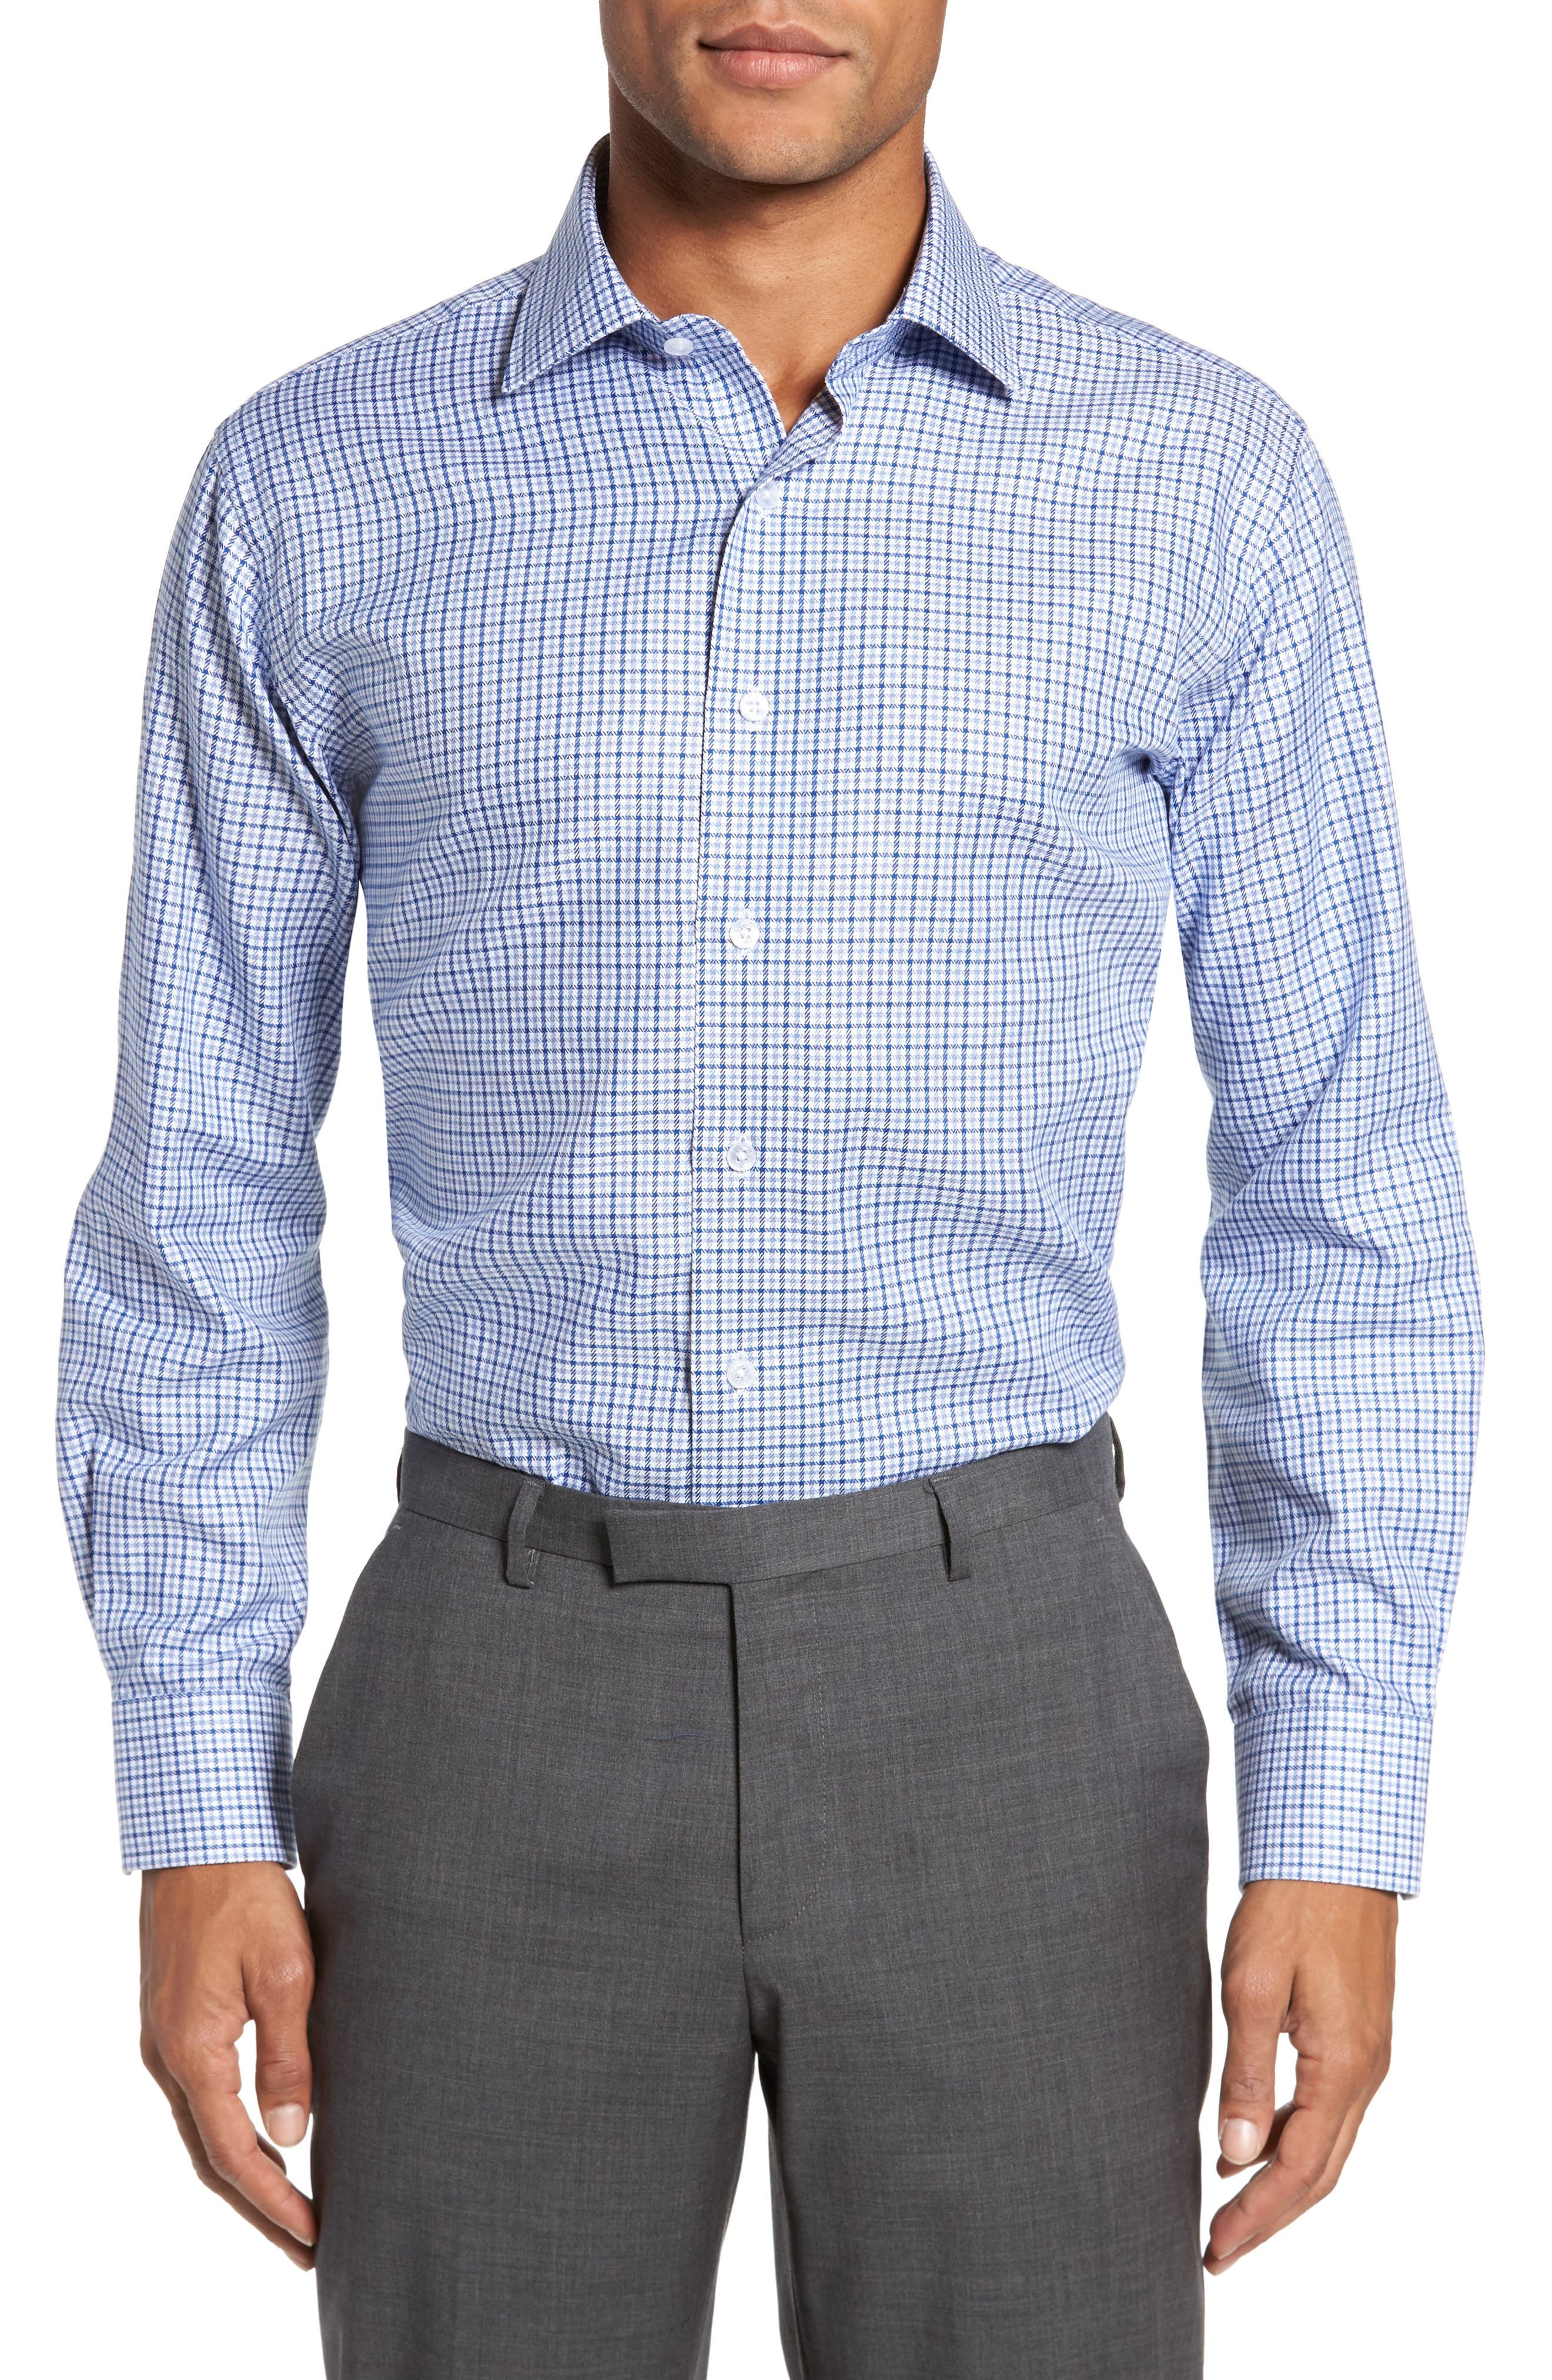 Trim Fit Textured Check Dress Shirt,                             Main thumbnail 1, color,                             NAVY